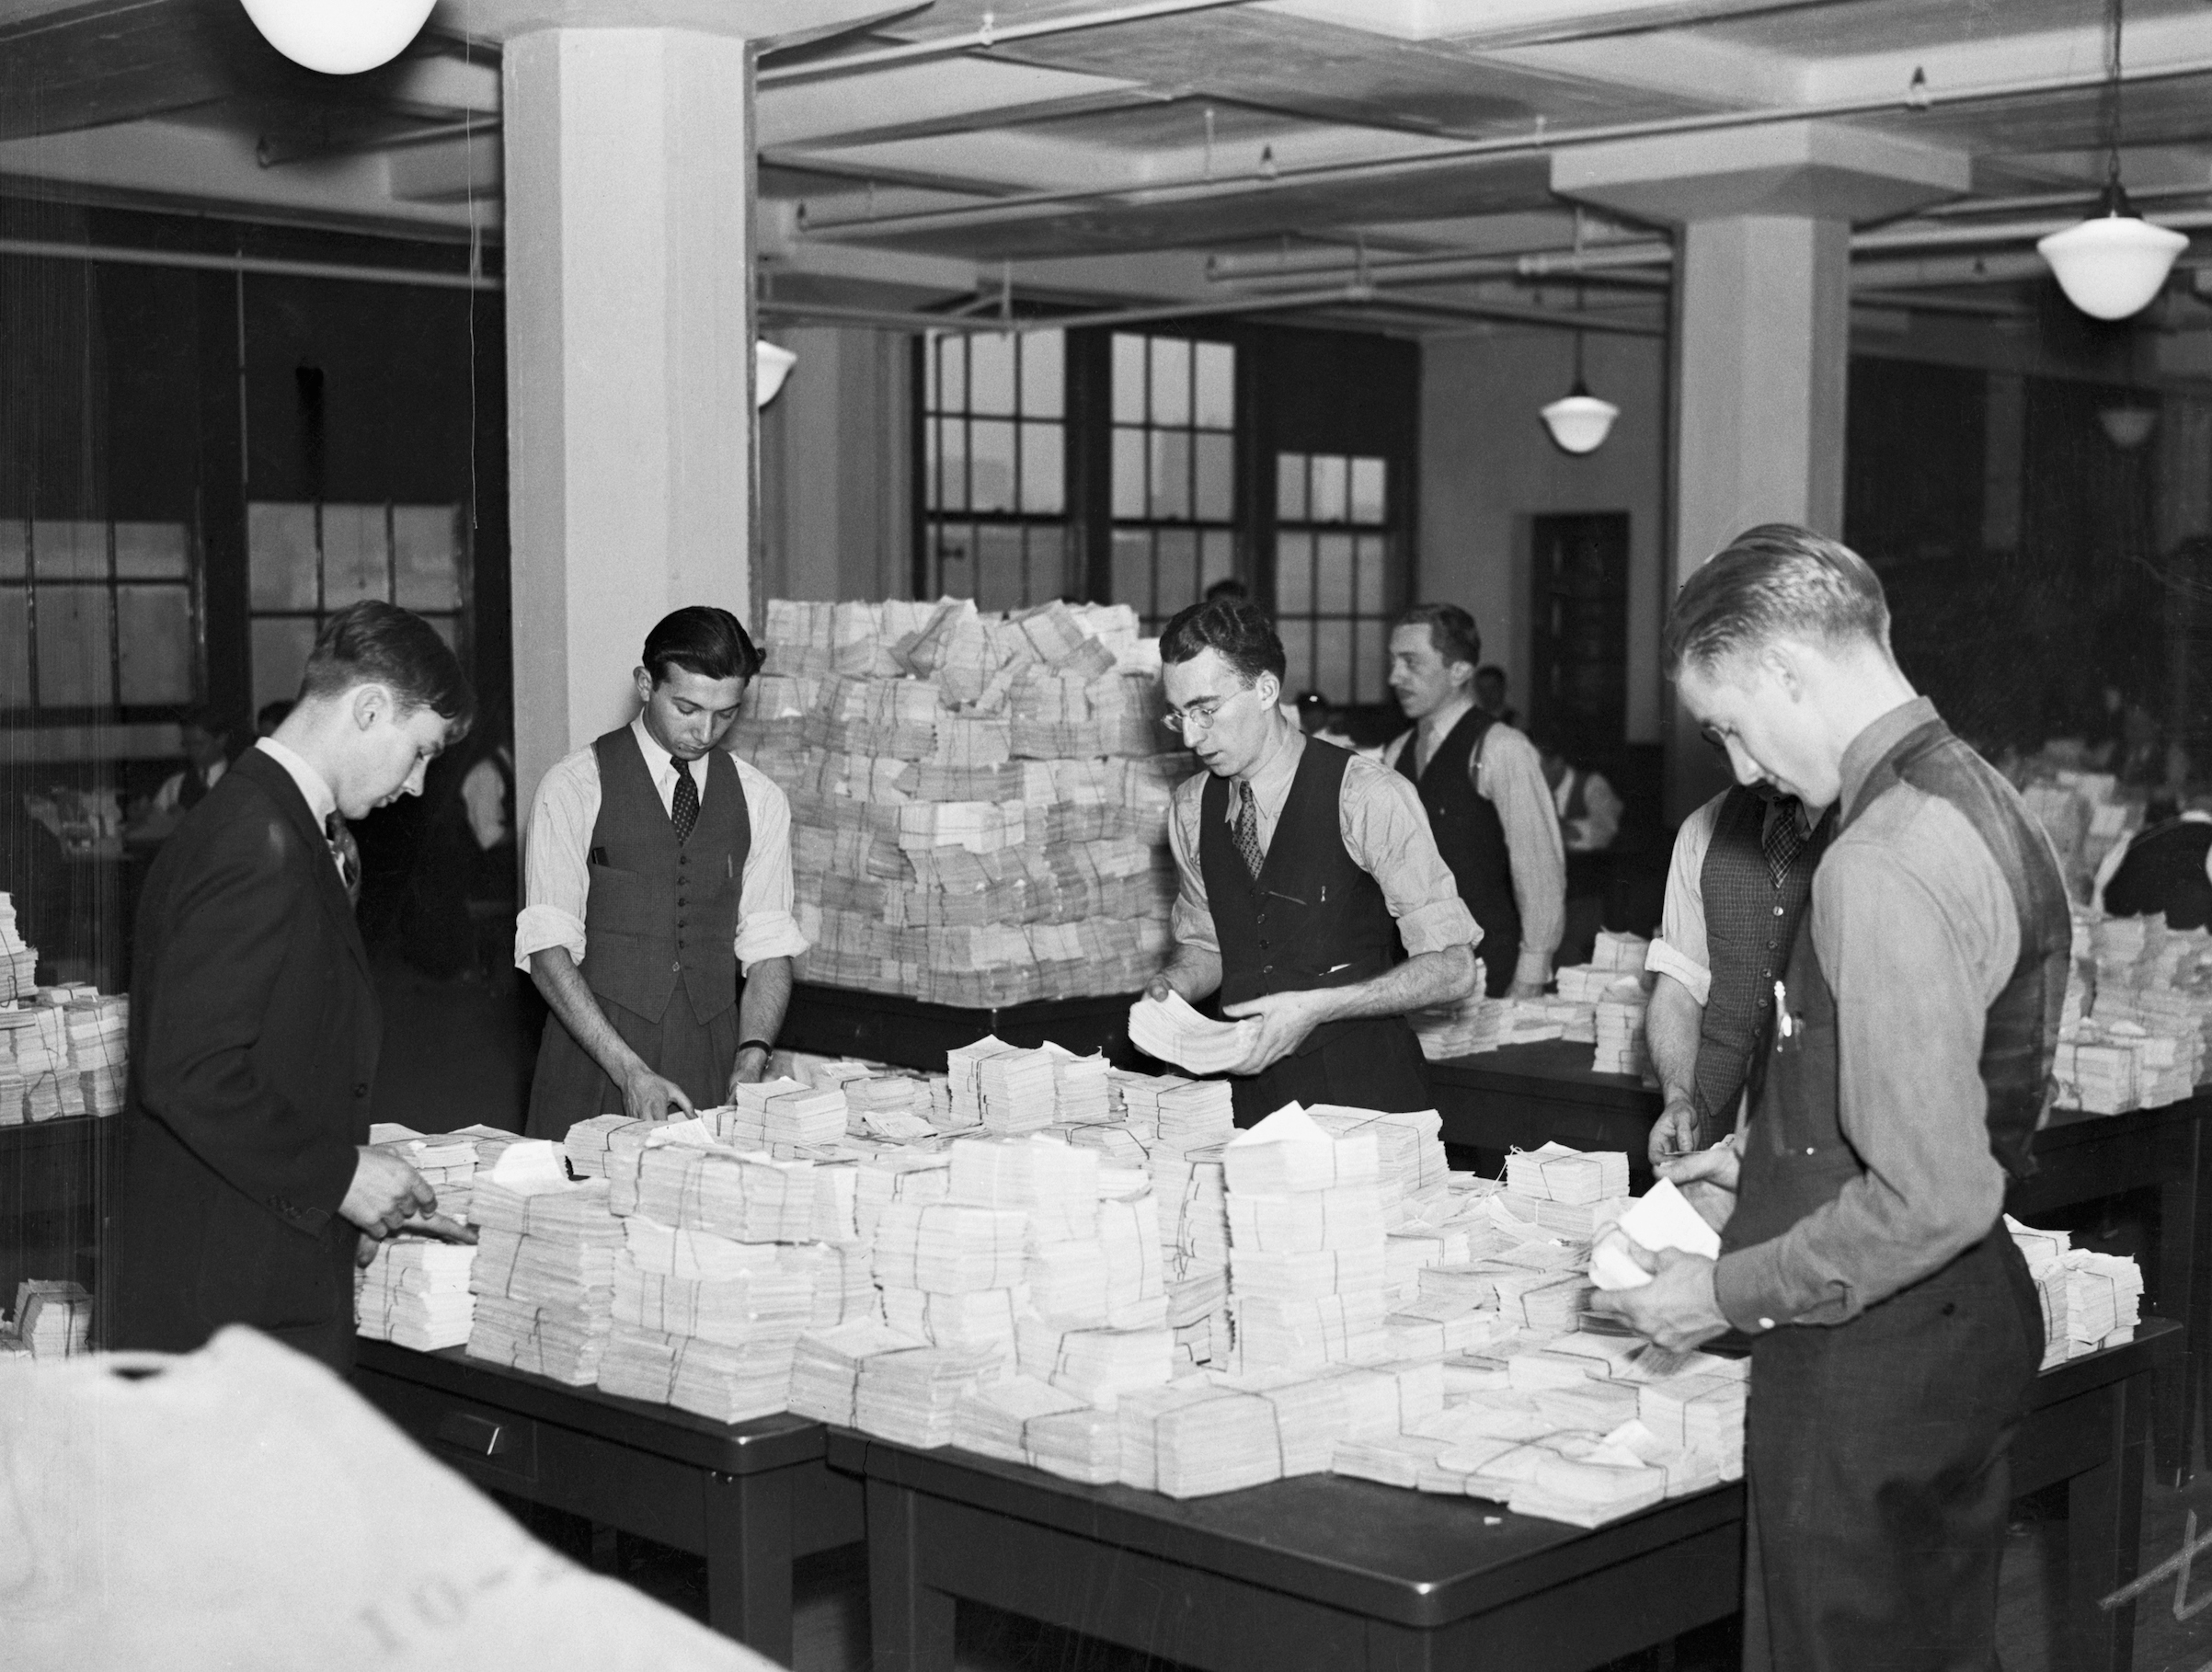 Employees at work establishing individual social security accounts for millions of workers at the wage records office in 1936